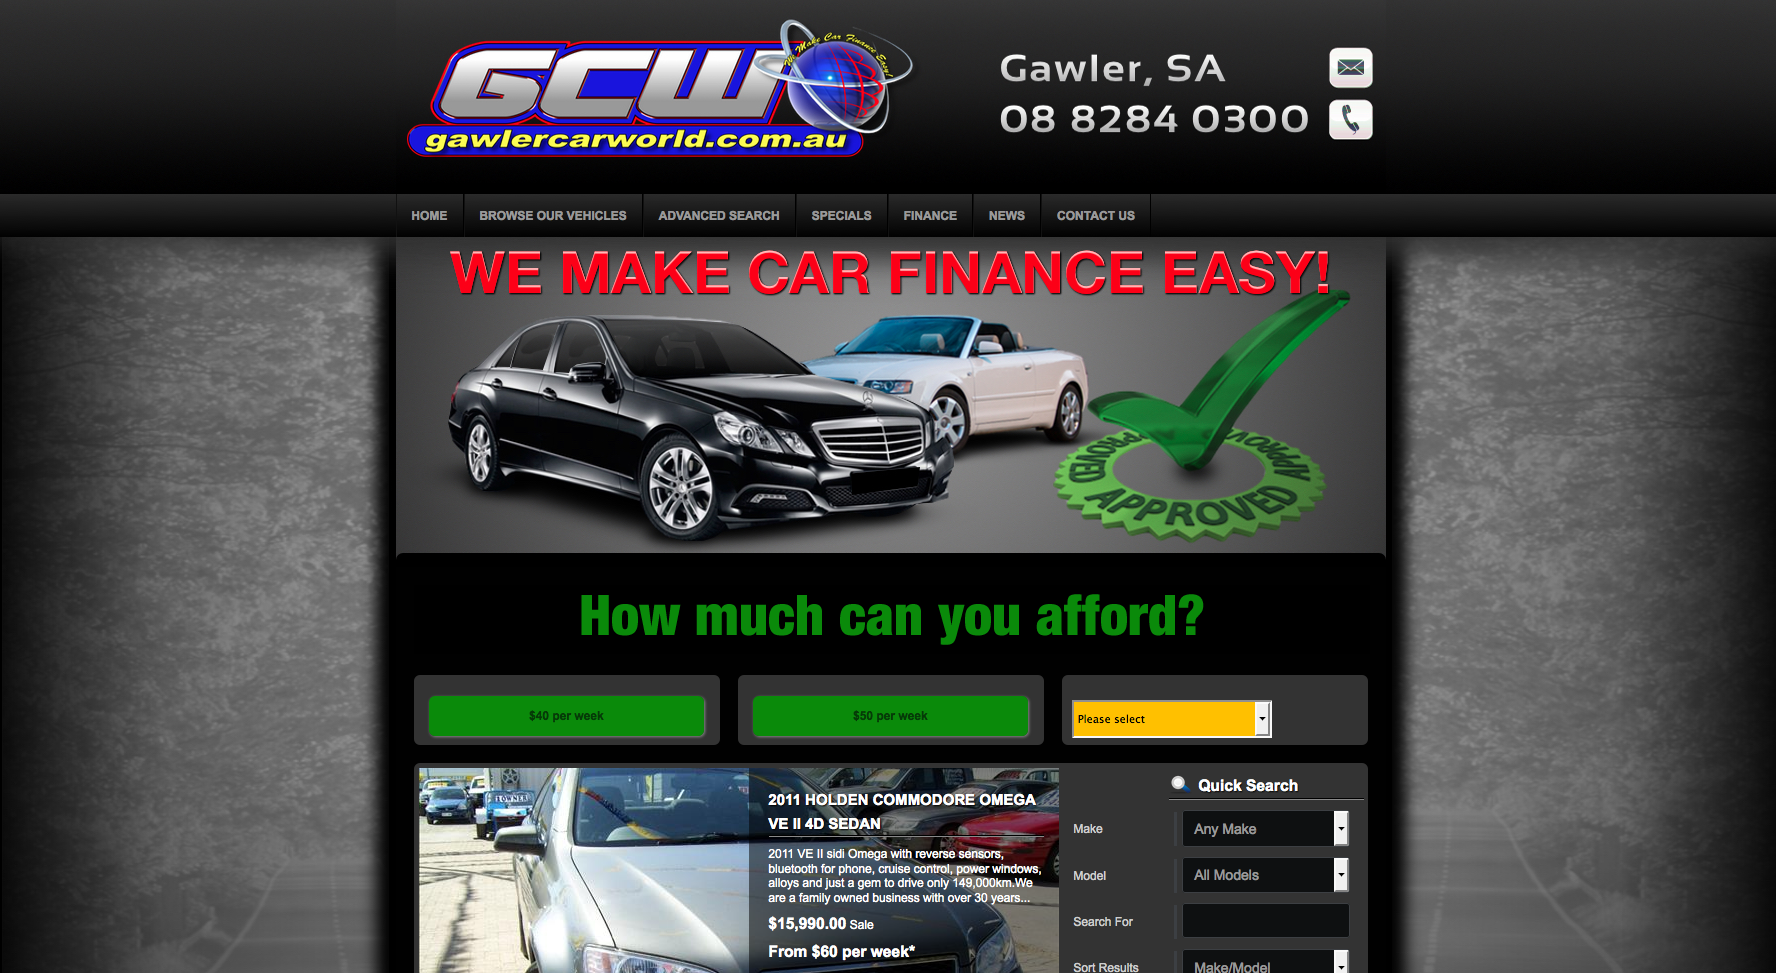 New Website Launched for Gawler Car World!